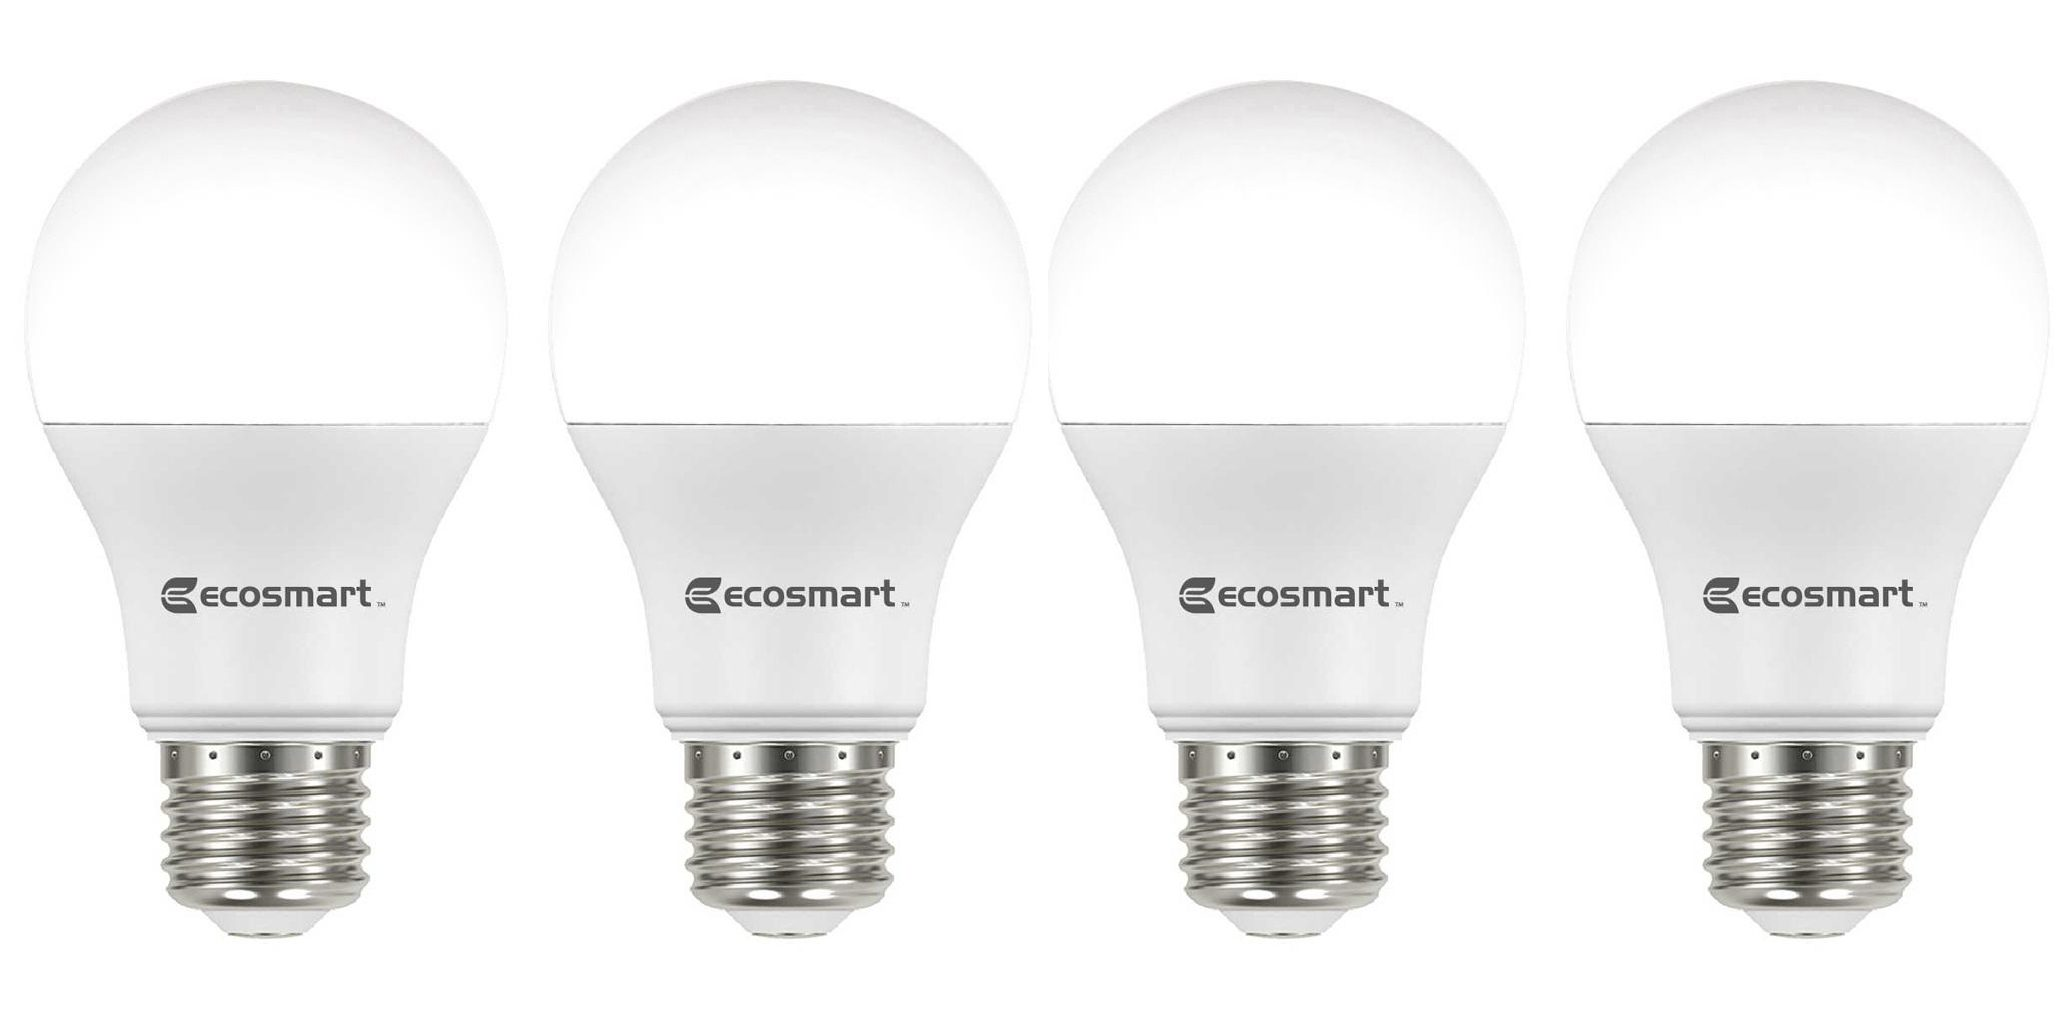 60w Light Bulb Green Deals Ecosmart 4 Pack 60w A19 Dimmable Led Light Bulbs 6